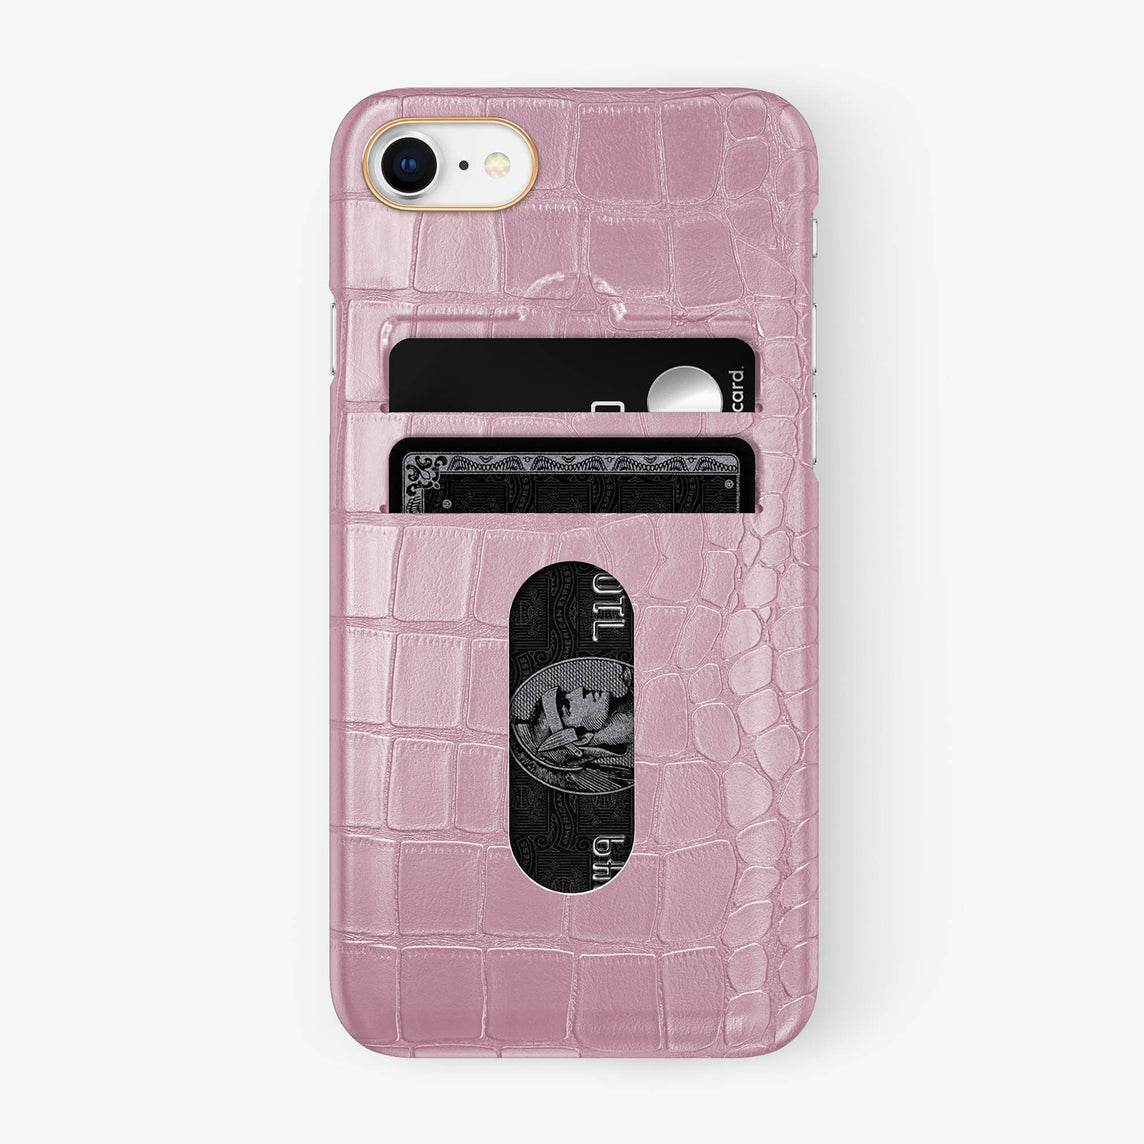 Alligator [iPhone Card Holder Case] [model:iphone-7-8-case] [colour:pink] [finishing:rose-gold] - Hadoro